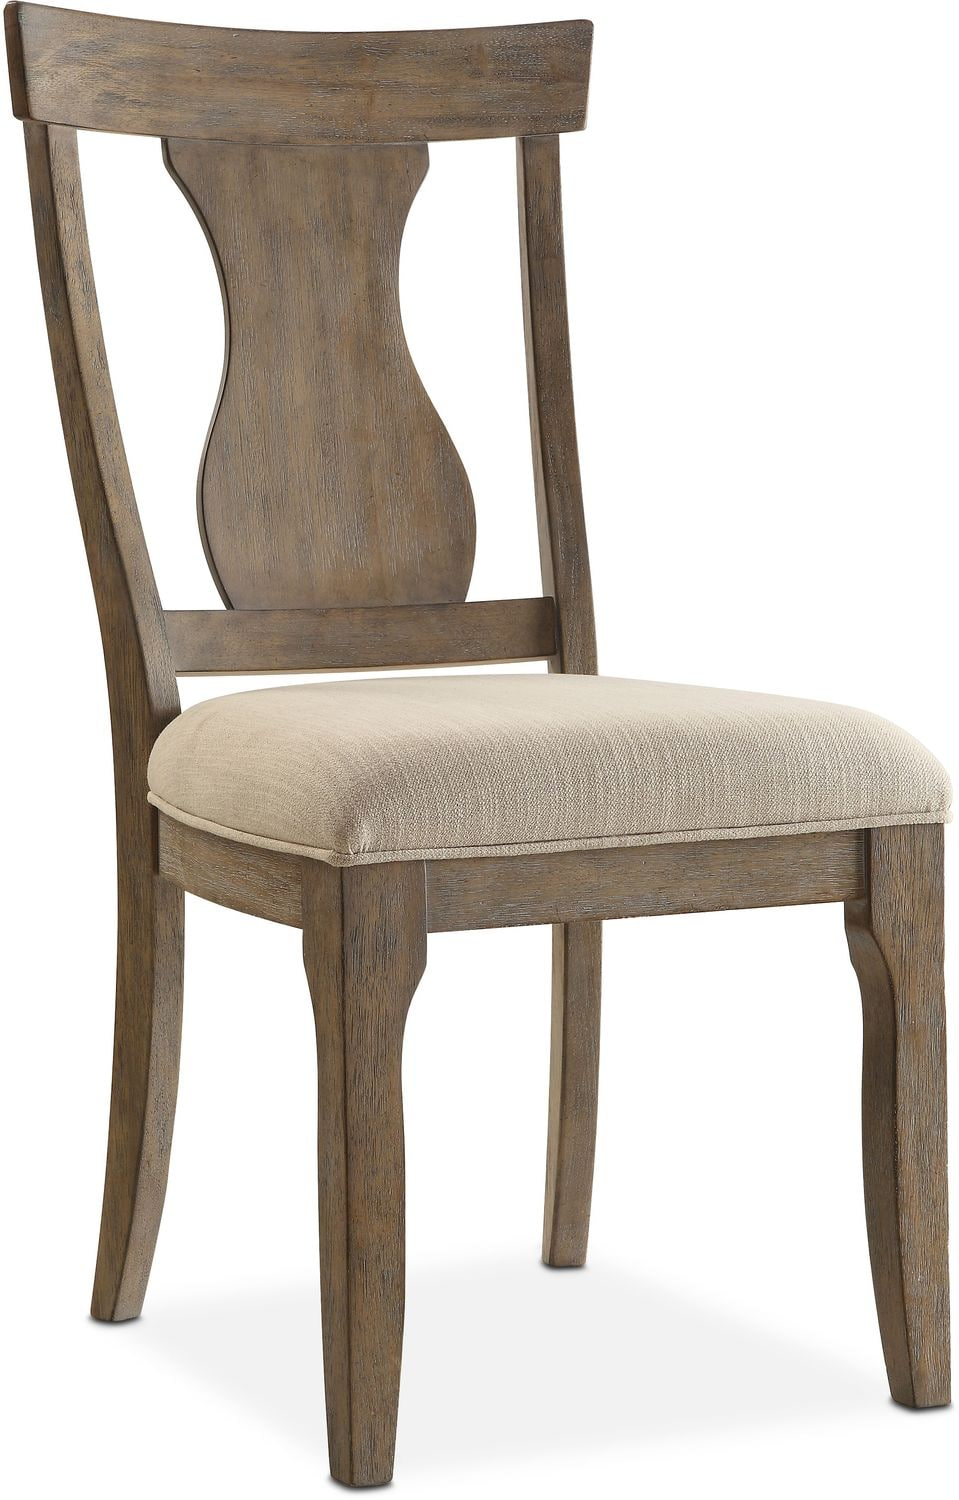 Dining Room Furniture - Lancaster Splat Back Dining Chair